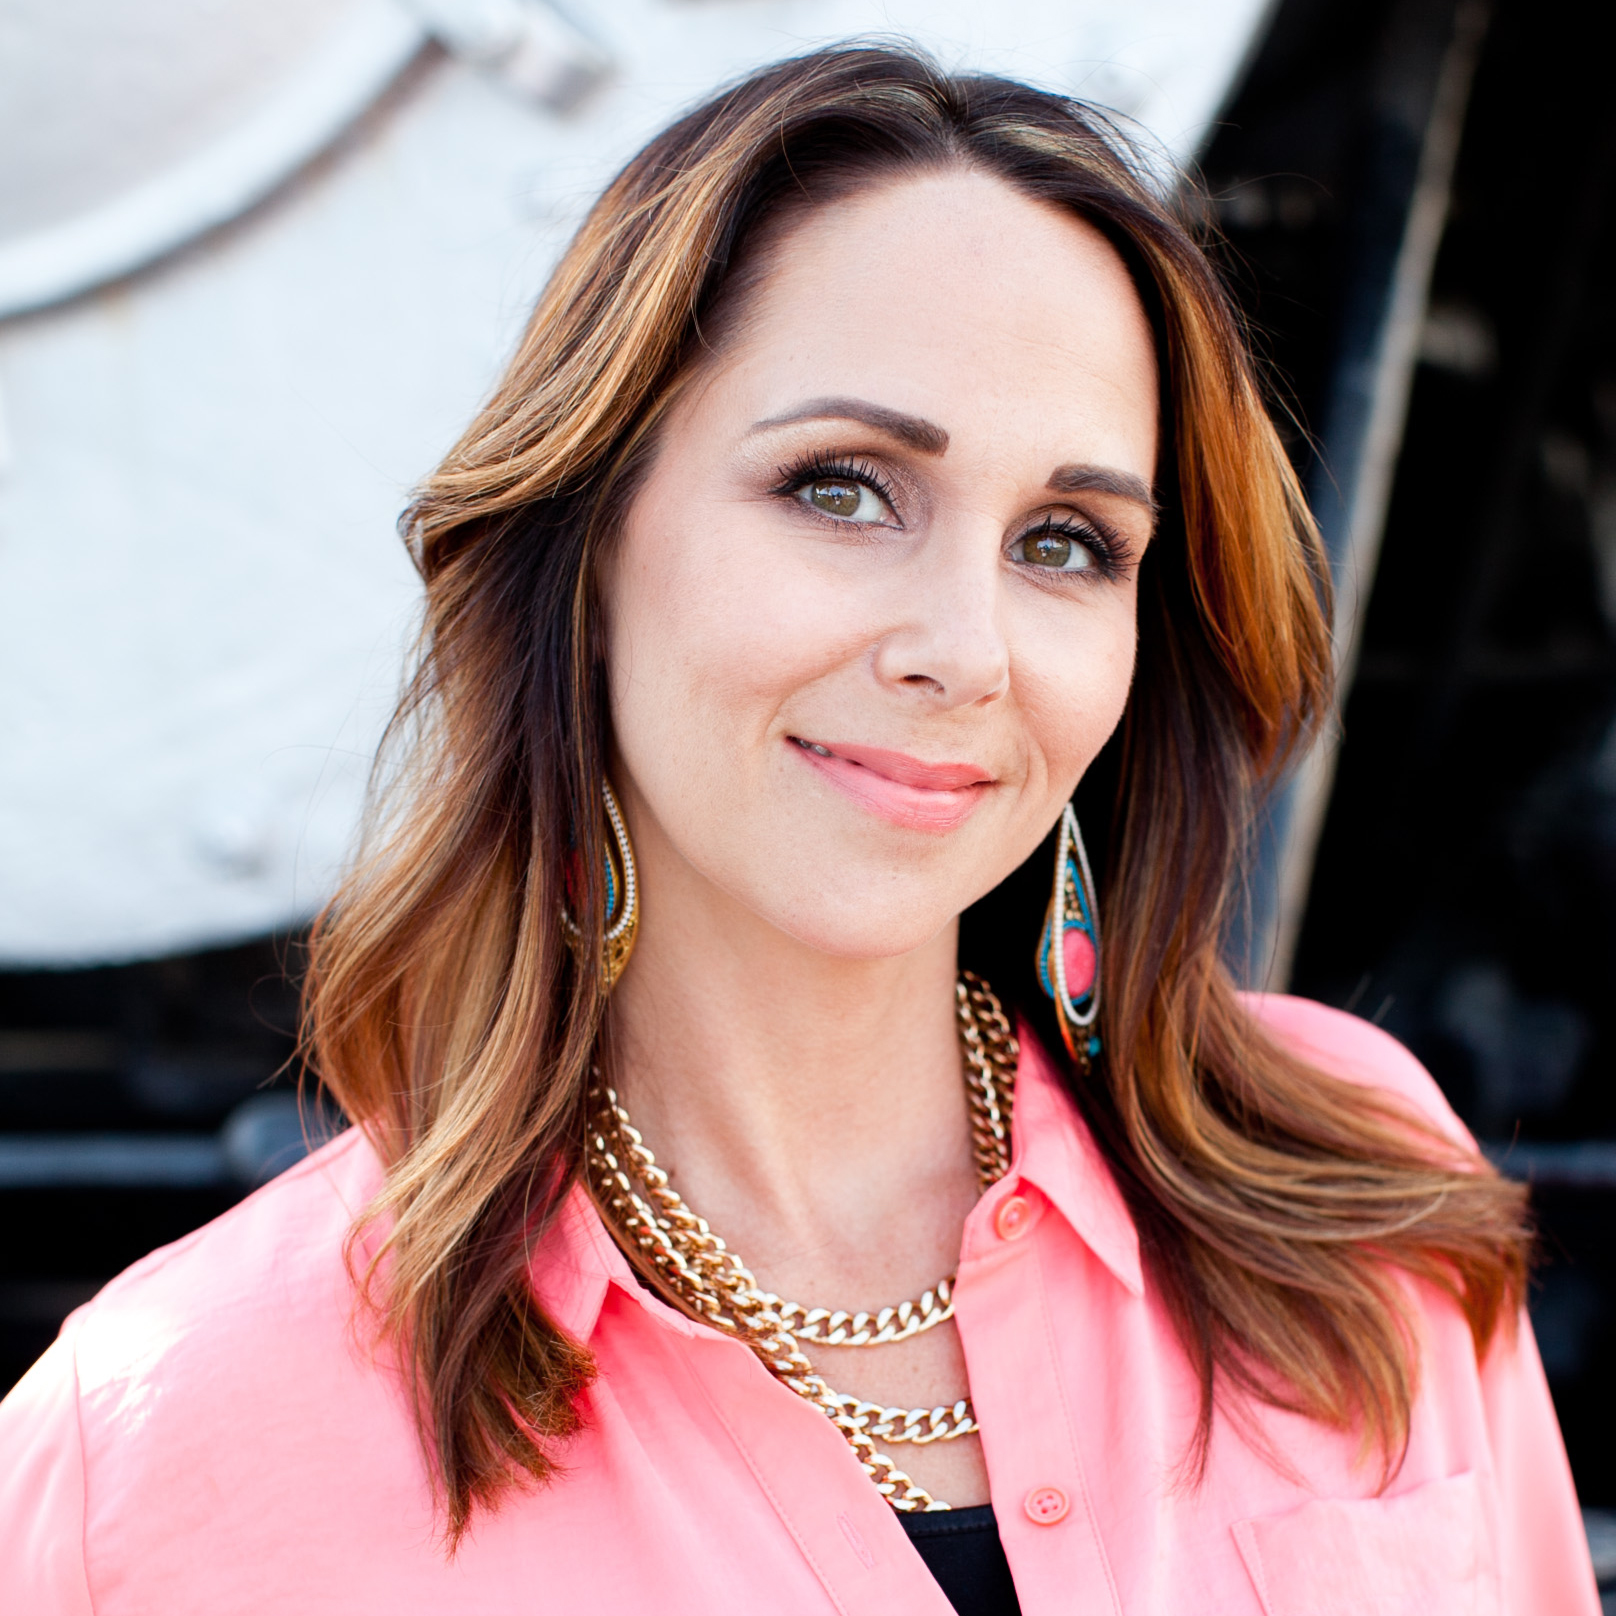 Nina Richardson   I have been a stylist for 15 years and I lovewhat I do!! I specialize in color, cuts, and formal hair styling. I enjoy making my clients feel good and love their hair! My clients havebecome very good friends over the years and I'm thankful to be working with awesome people!      Contact info:  619-252-1173   Email:  vaehrg10@gmail.com